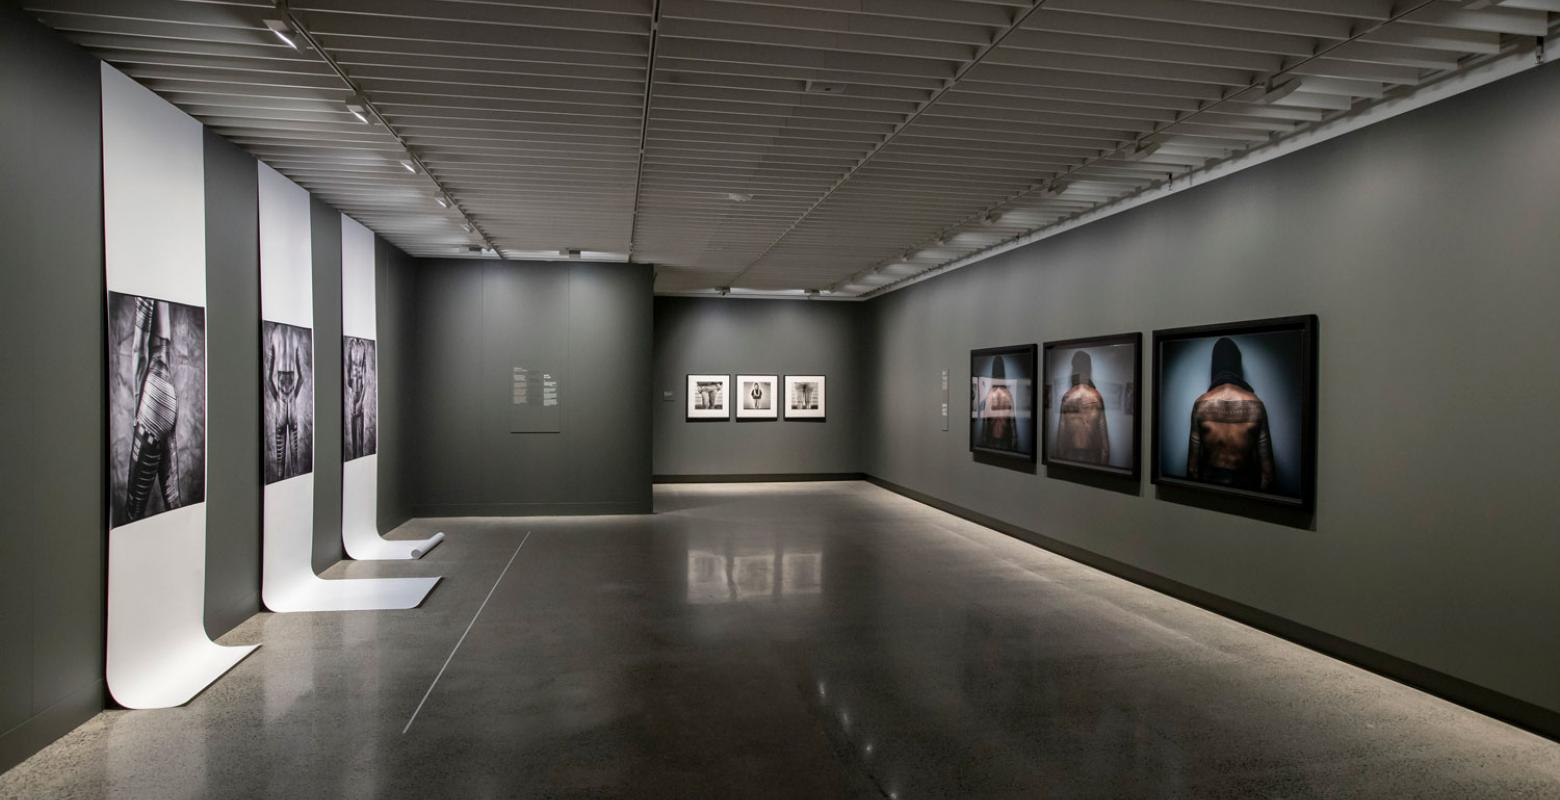 View of a gallery, photos of tattooed people on the walls